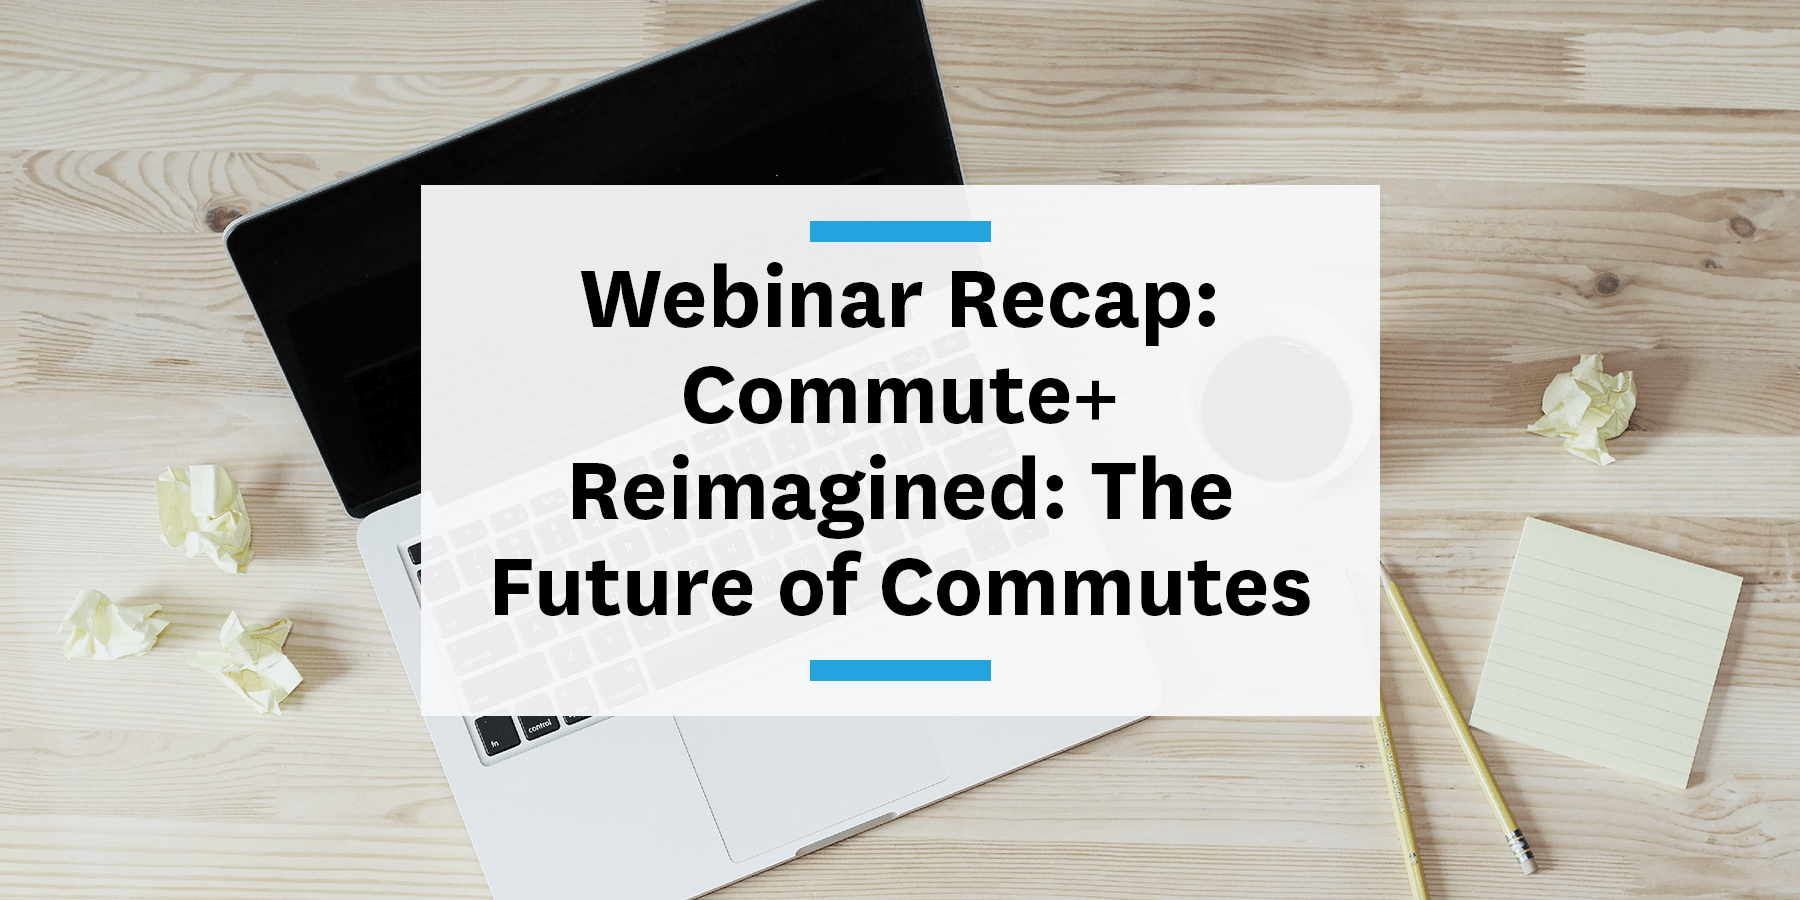 Commute+ reimagined webinar recap the future of commutes